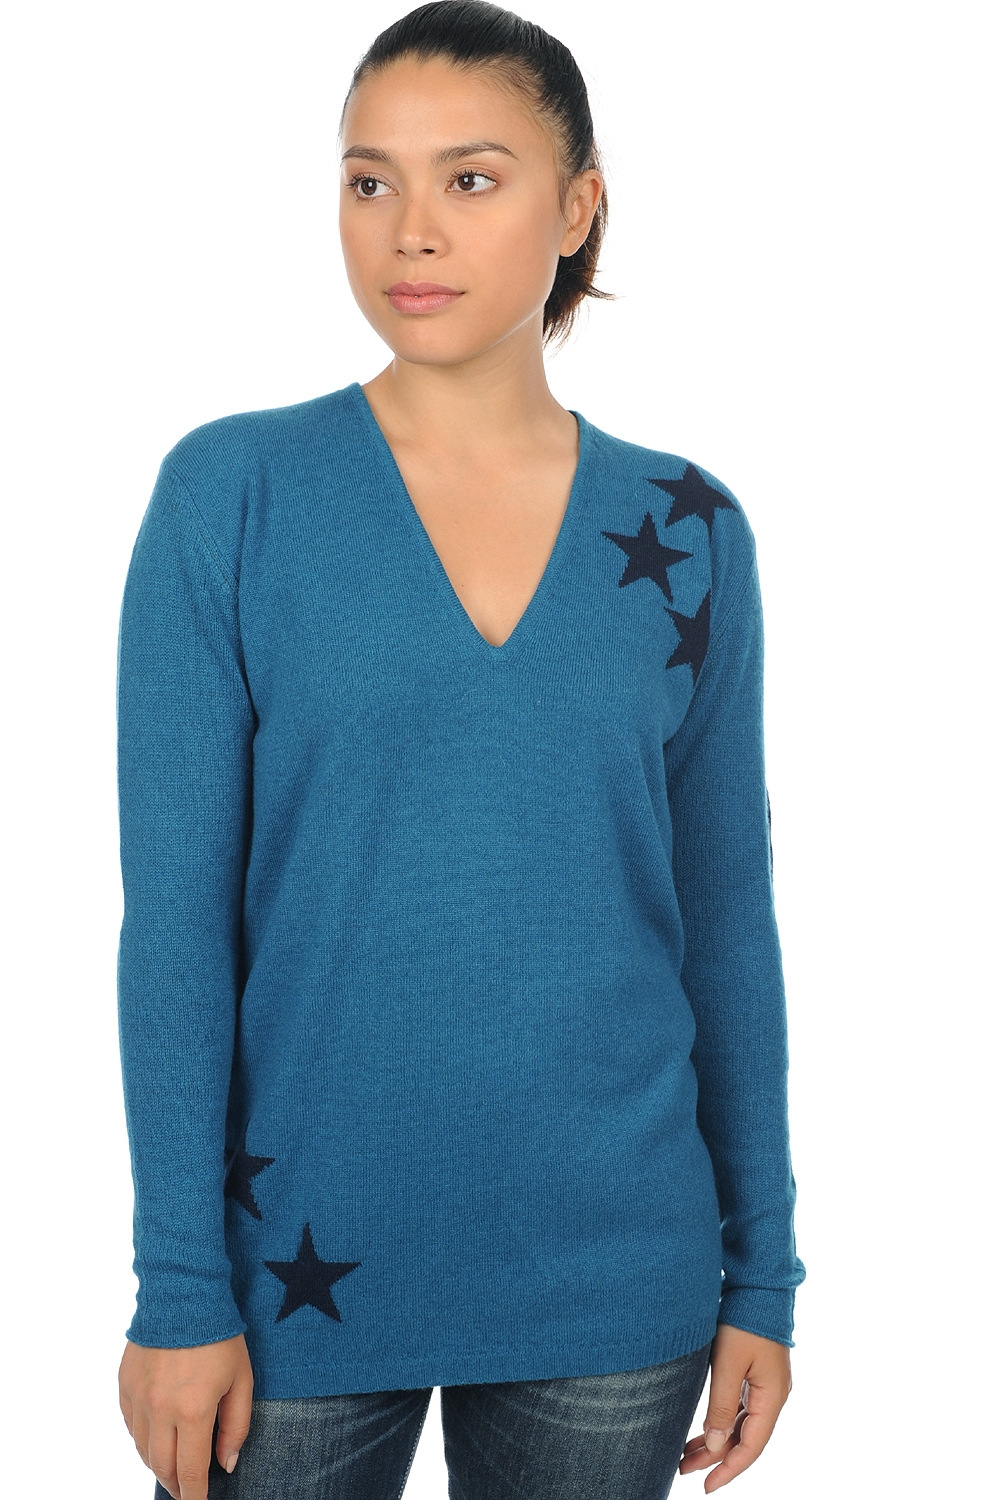 cashmere ladies v necks armel canard blue dress blue  stars xs